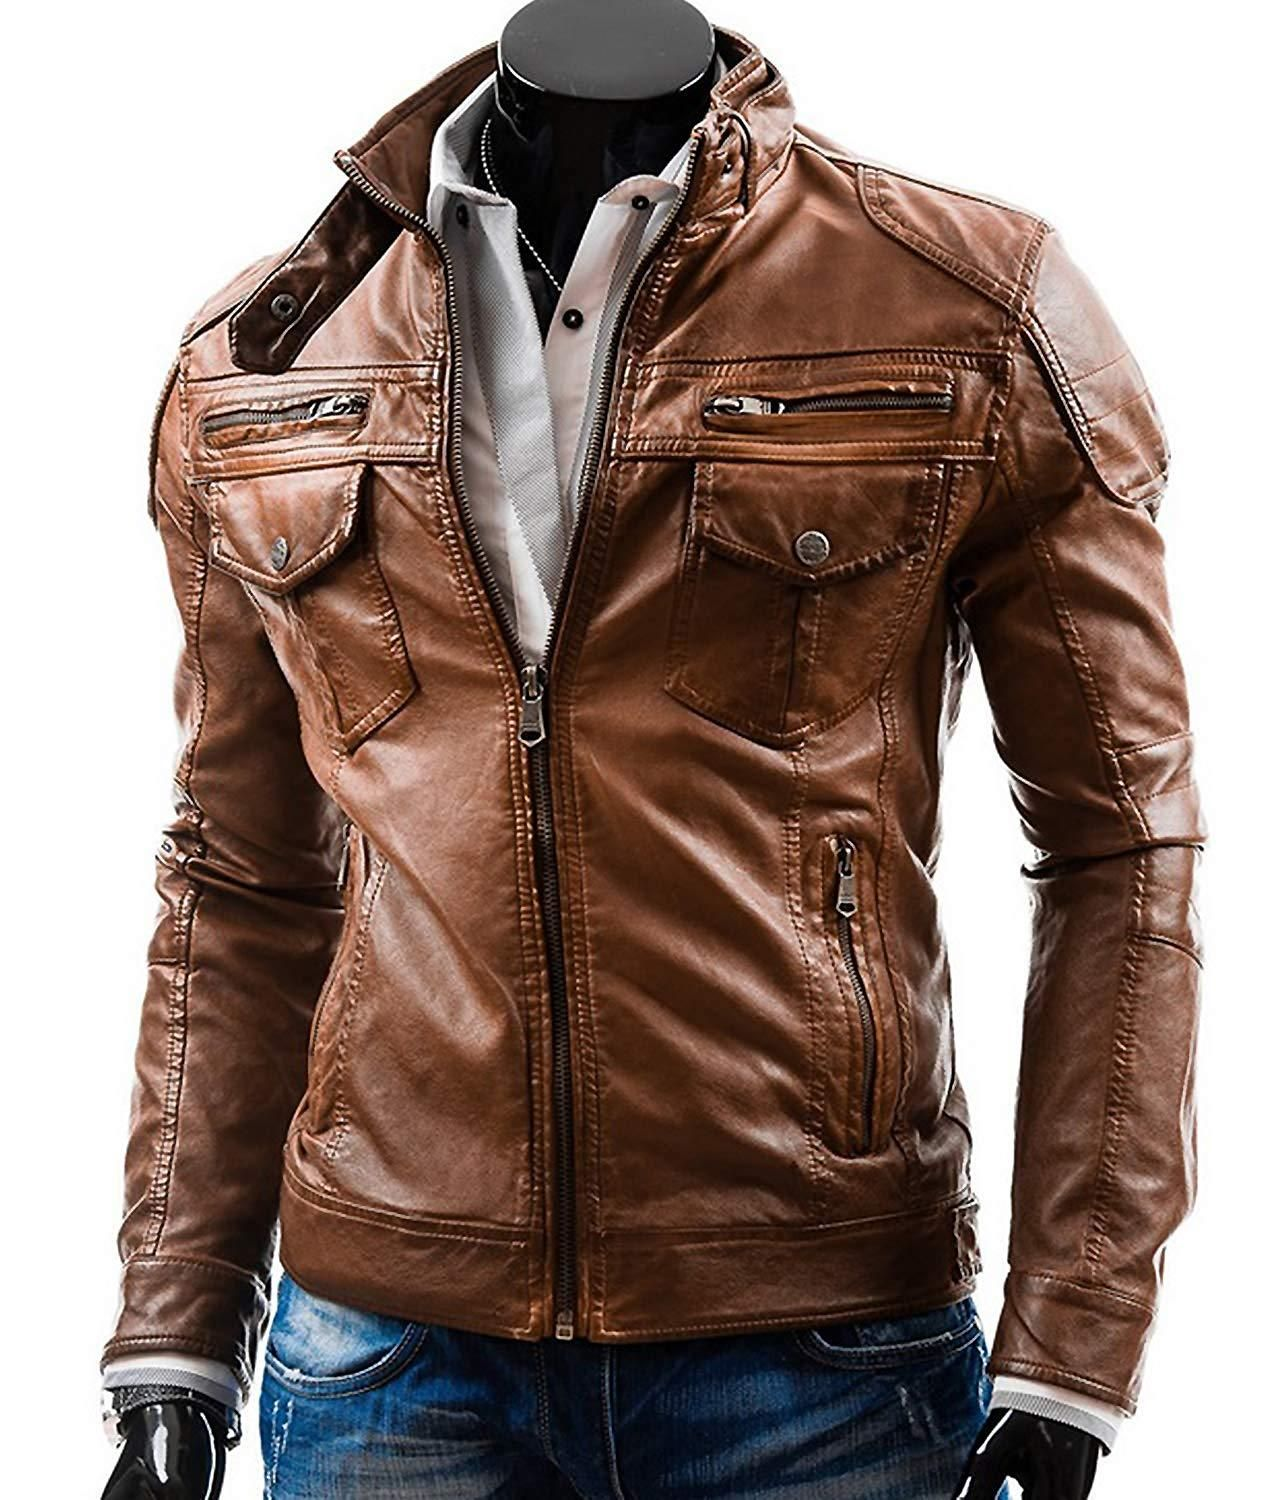 Men Aged Motorcycle Style Solid Color Lambskin Leather Jacket Outerwear Leather Jacket Men Style Leather Jacket Boys Leather Jacket [ 1500 x 1275 Pixel ]